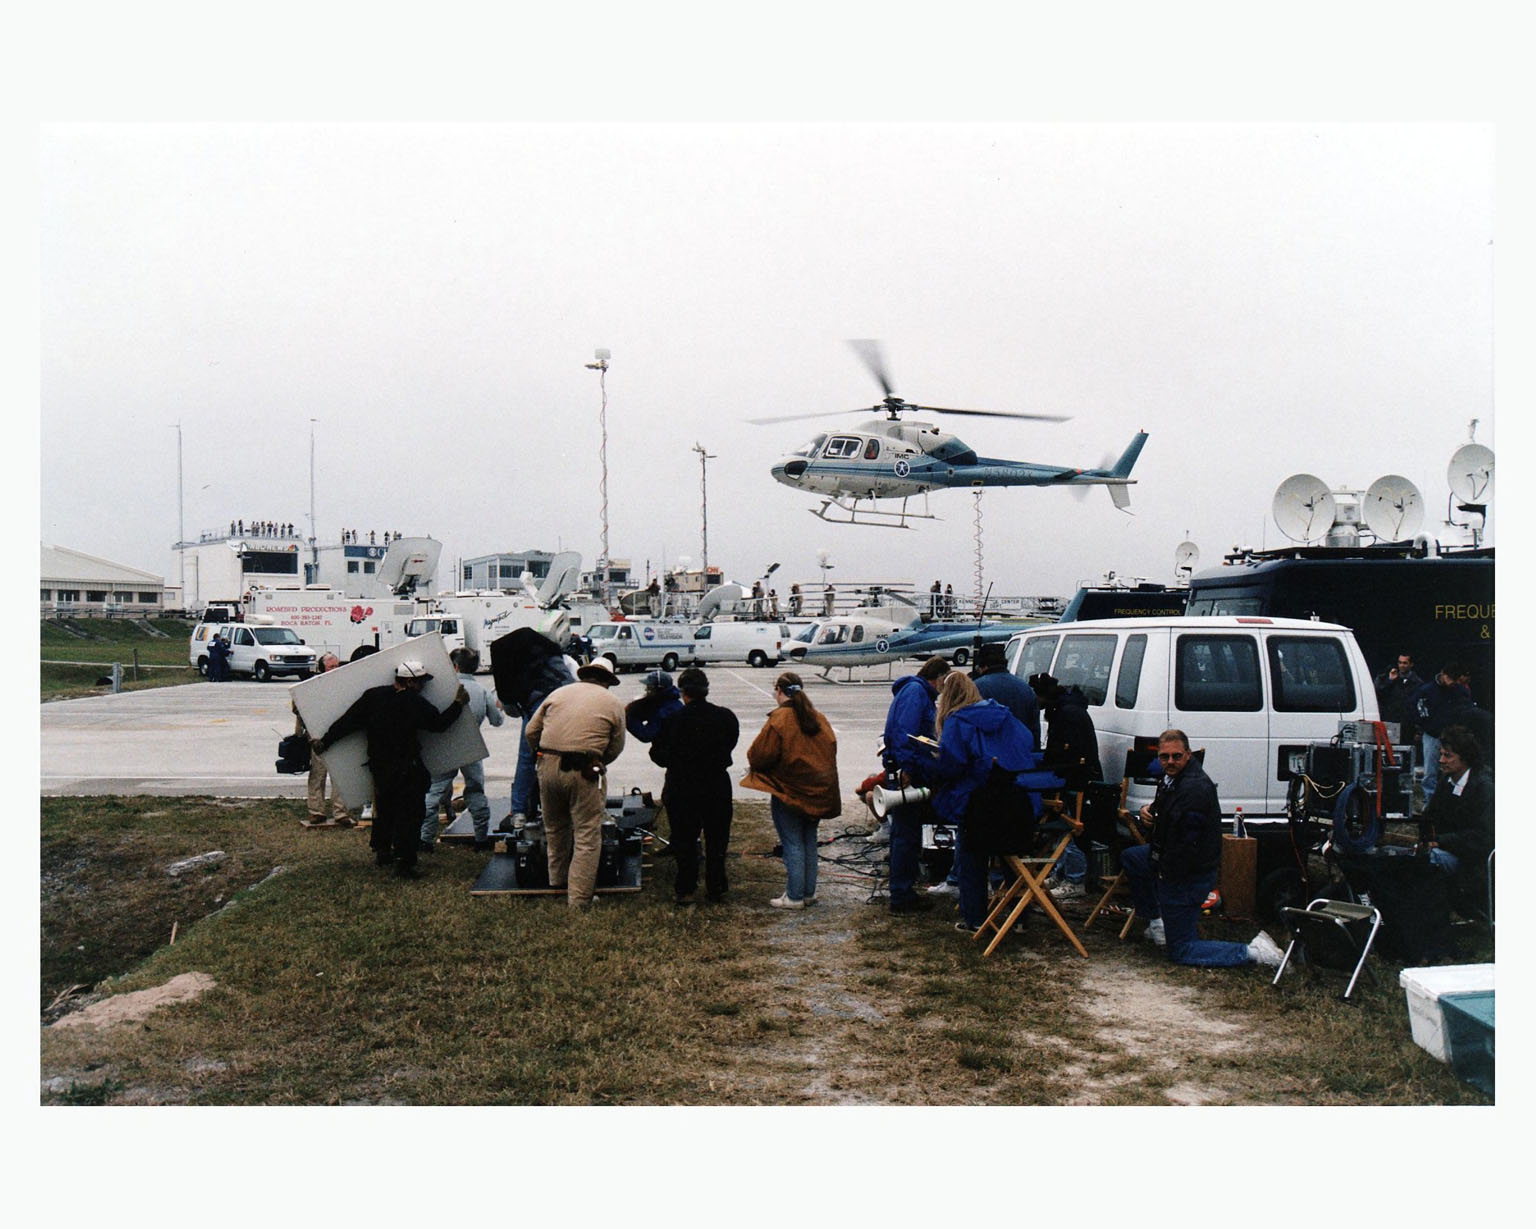 """Warner Bros.' cast and crew are filming scenes for the movie """"Contact"""" at Kennedy Space Center's Launch Complex 39 Press Site on January 30. The screenplay for """"Contact"""" is based on the best-selling novel by the late astronomer Carl Sagan. The cast includes Jodie Foster, Matthew McConaughey, John Hurt, James Woods, Tom Skerritt, David Morse, William Fichtner, Rob Lowe and Angela Bassett. Described by Warner Bros. as a science fiction drama, """"Contact"""" will depict humankind's first encounter with evidence of extraterrestrial life"""